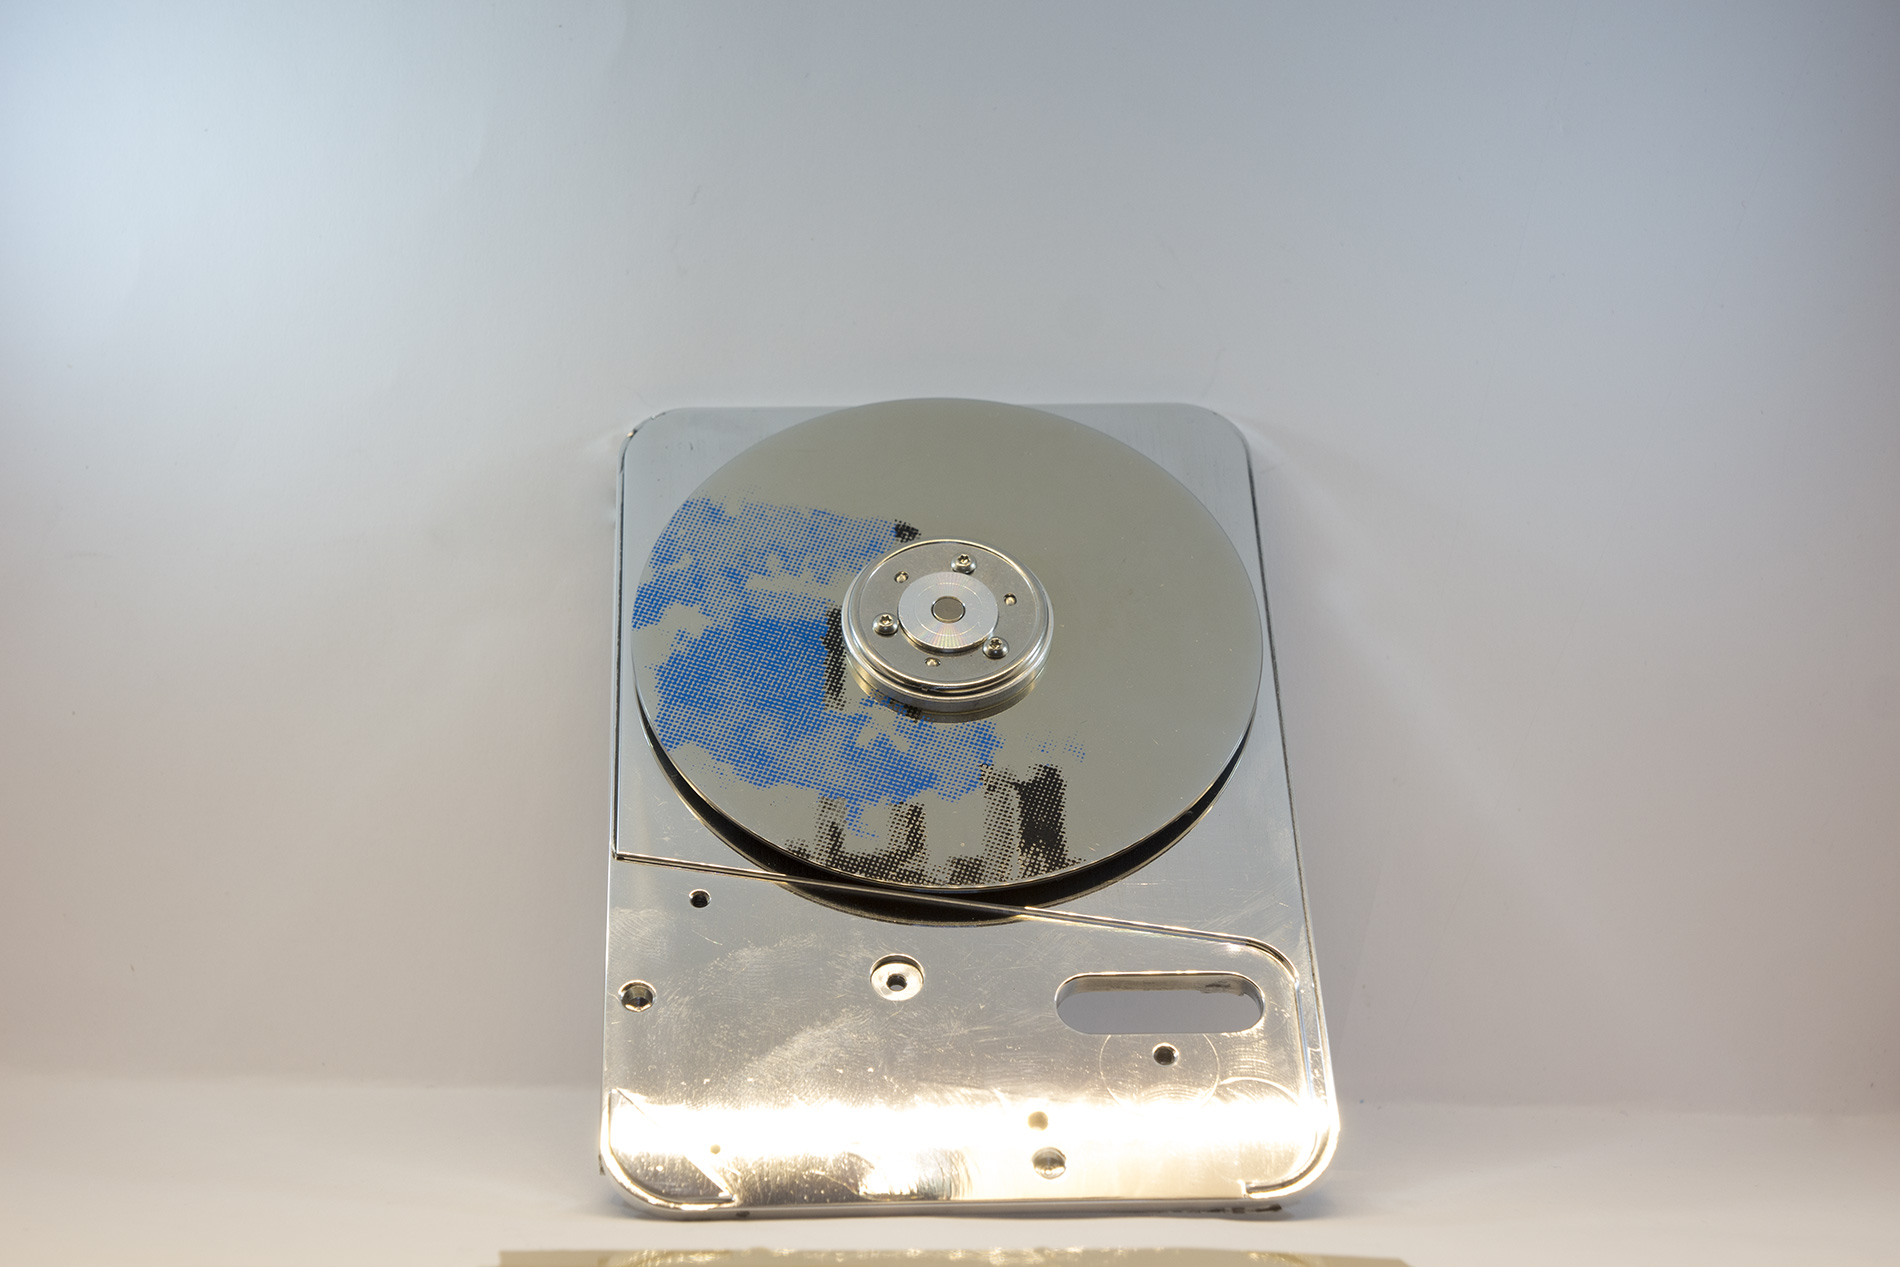 Art made of Hard drive parts - modern and contemporary